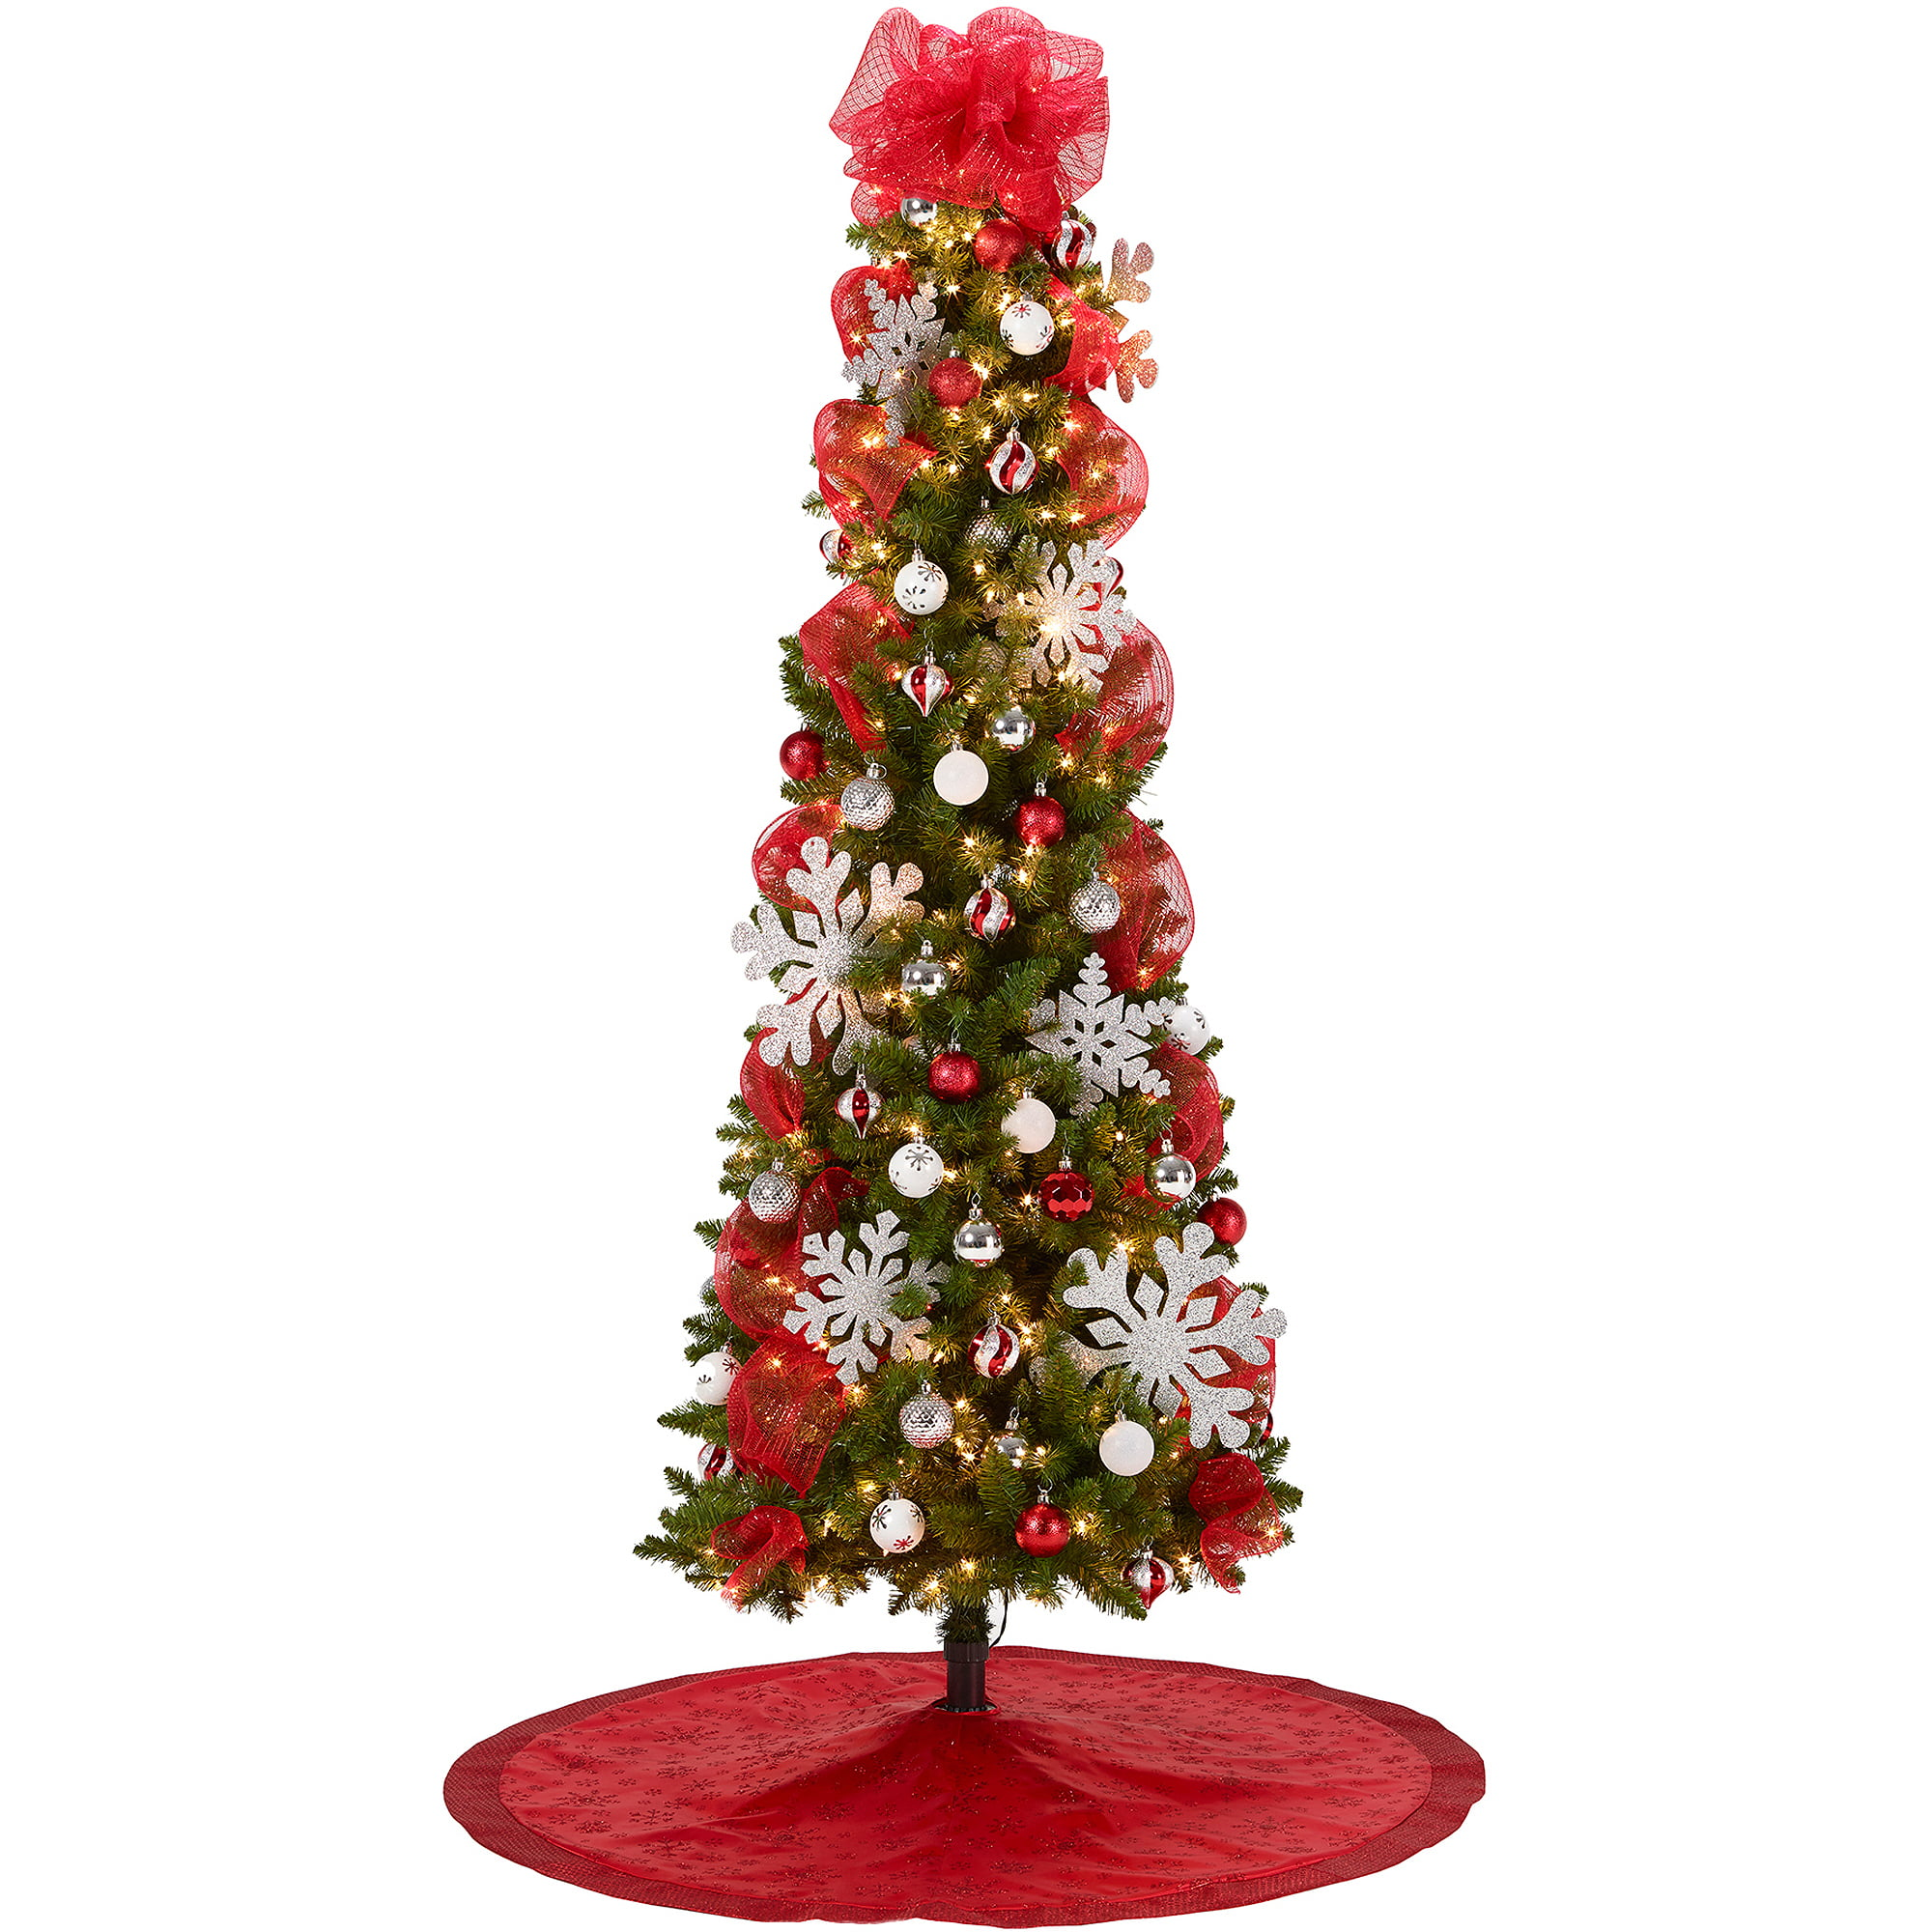 7 pre lit brinkley pine christmas tree with red and silver decoration kit walmartcom - Red And Silver Christmas Decorations